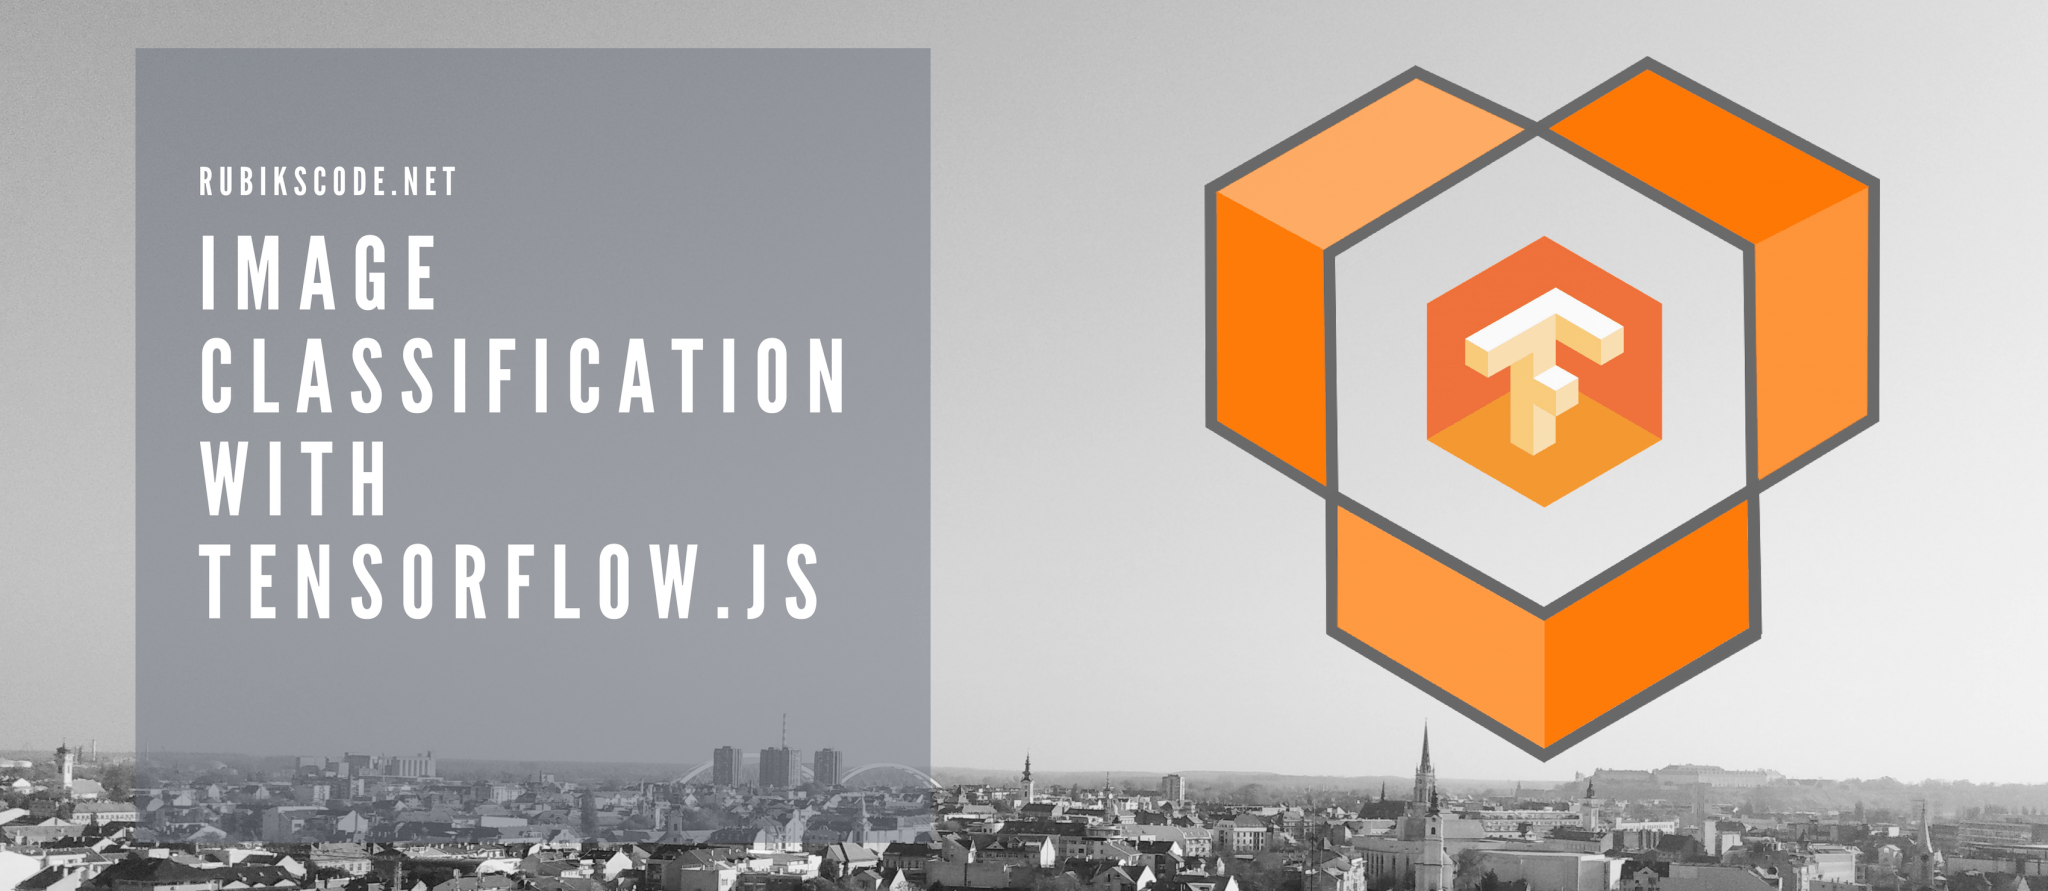 Image Classification With TensorFlow.js